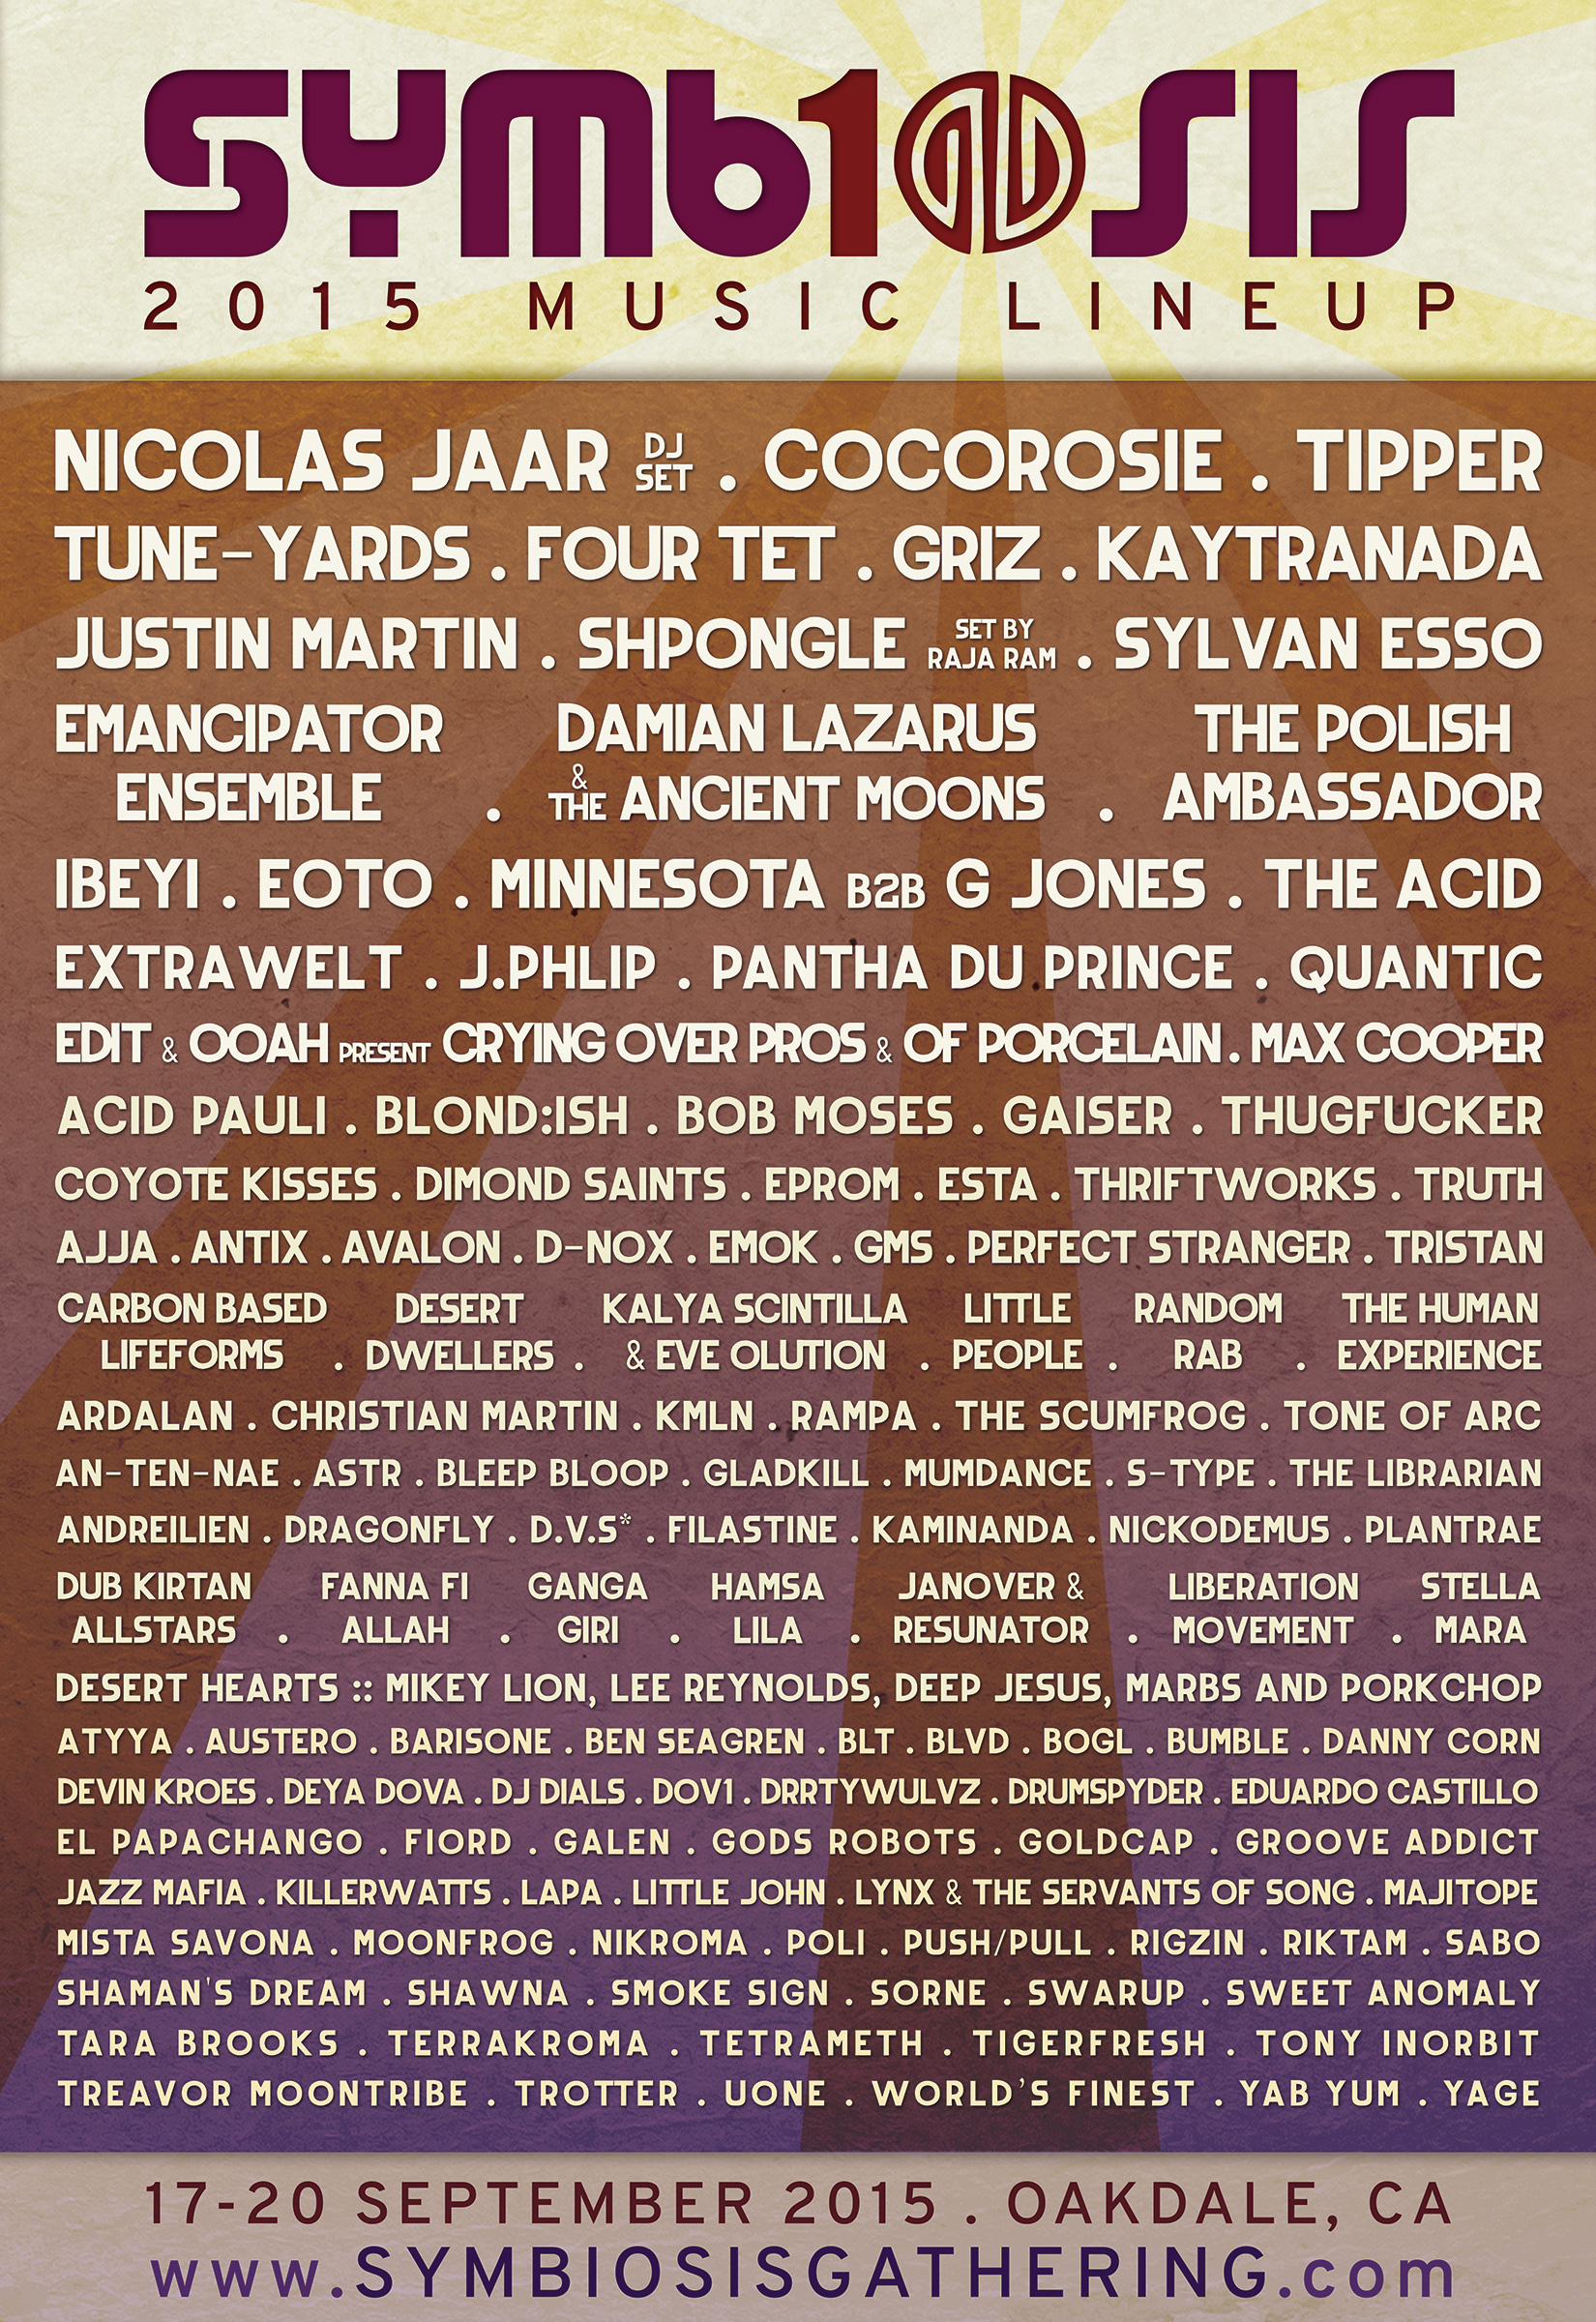 Symbiosis Gathering Complete Lineup